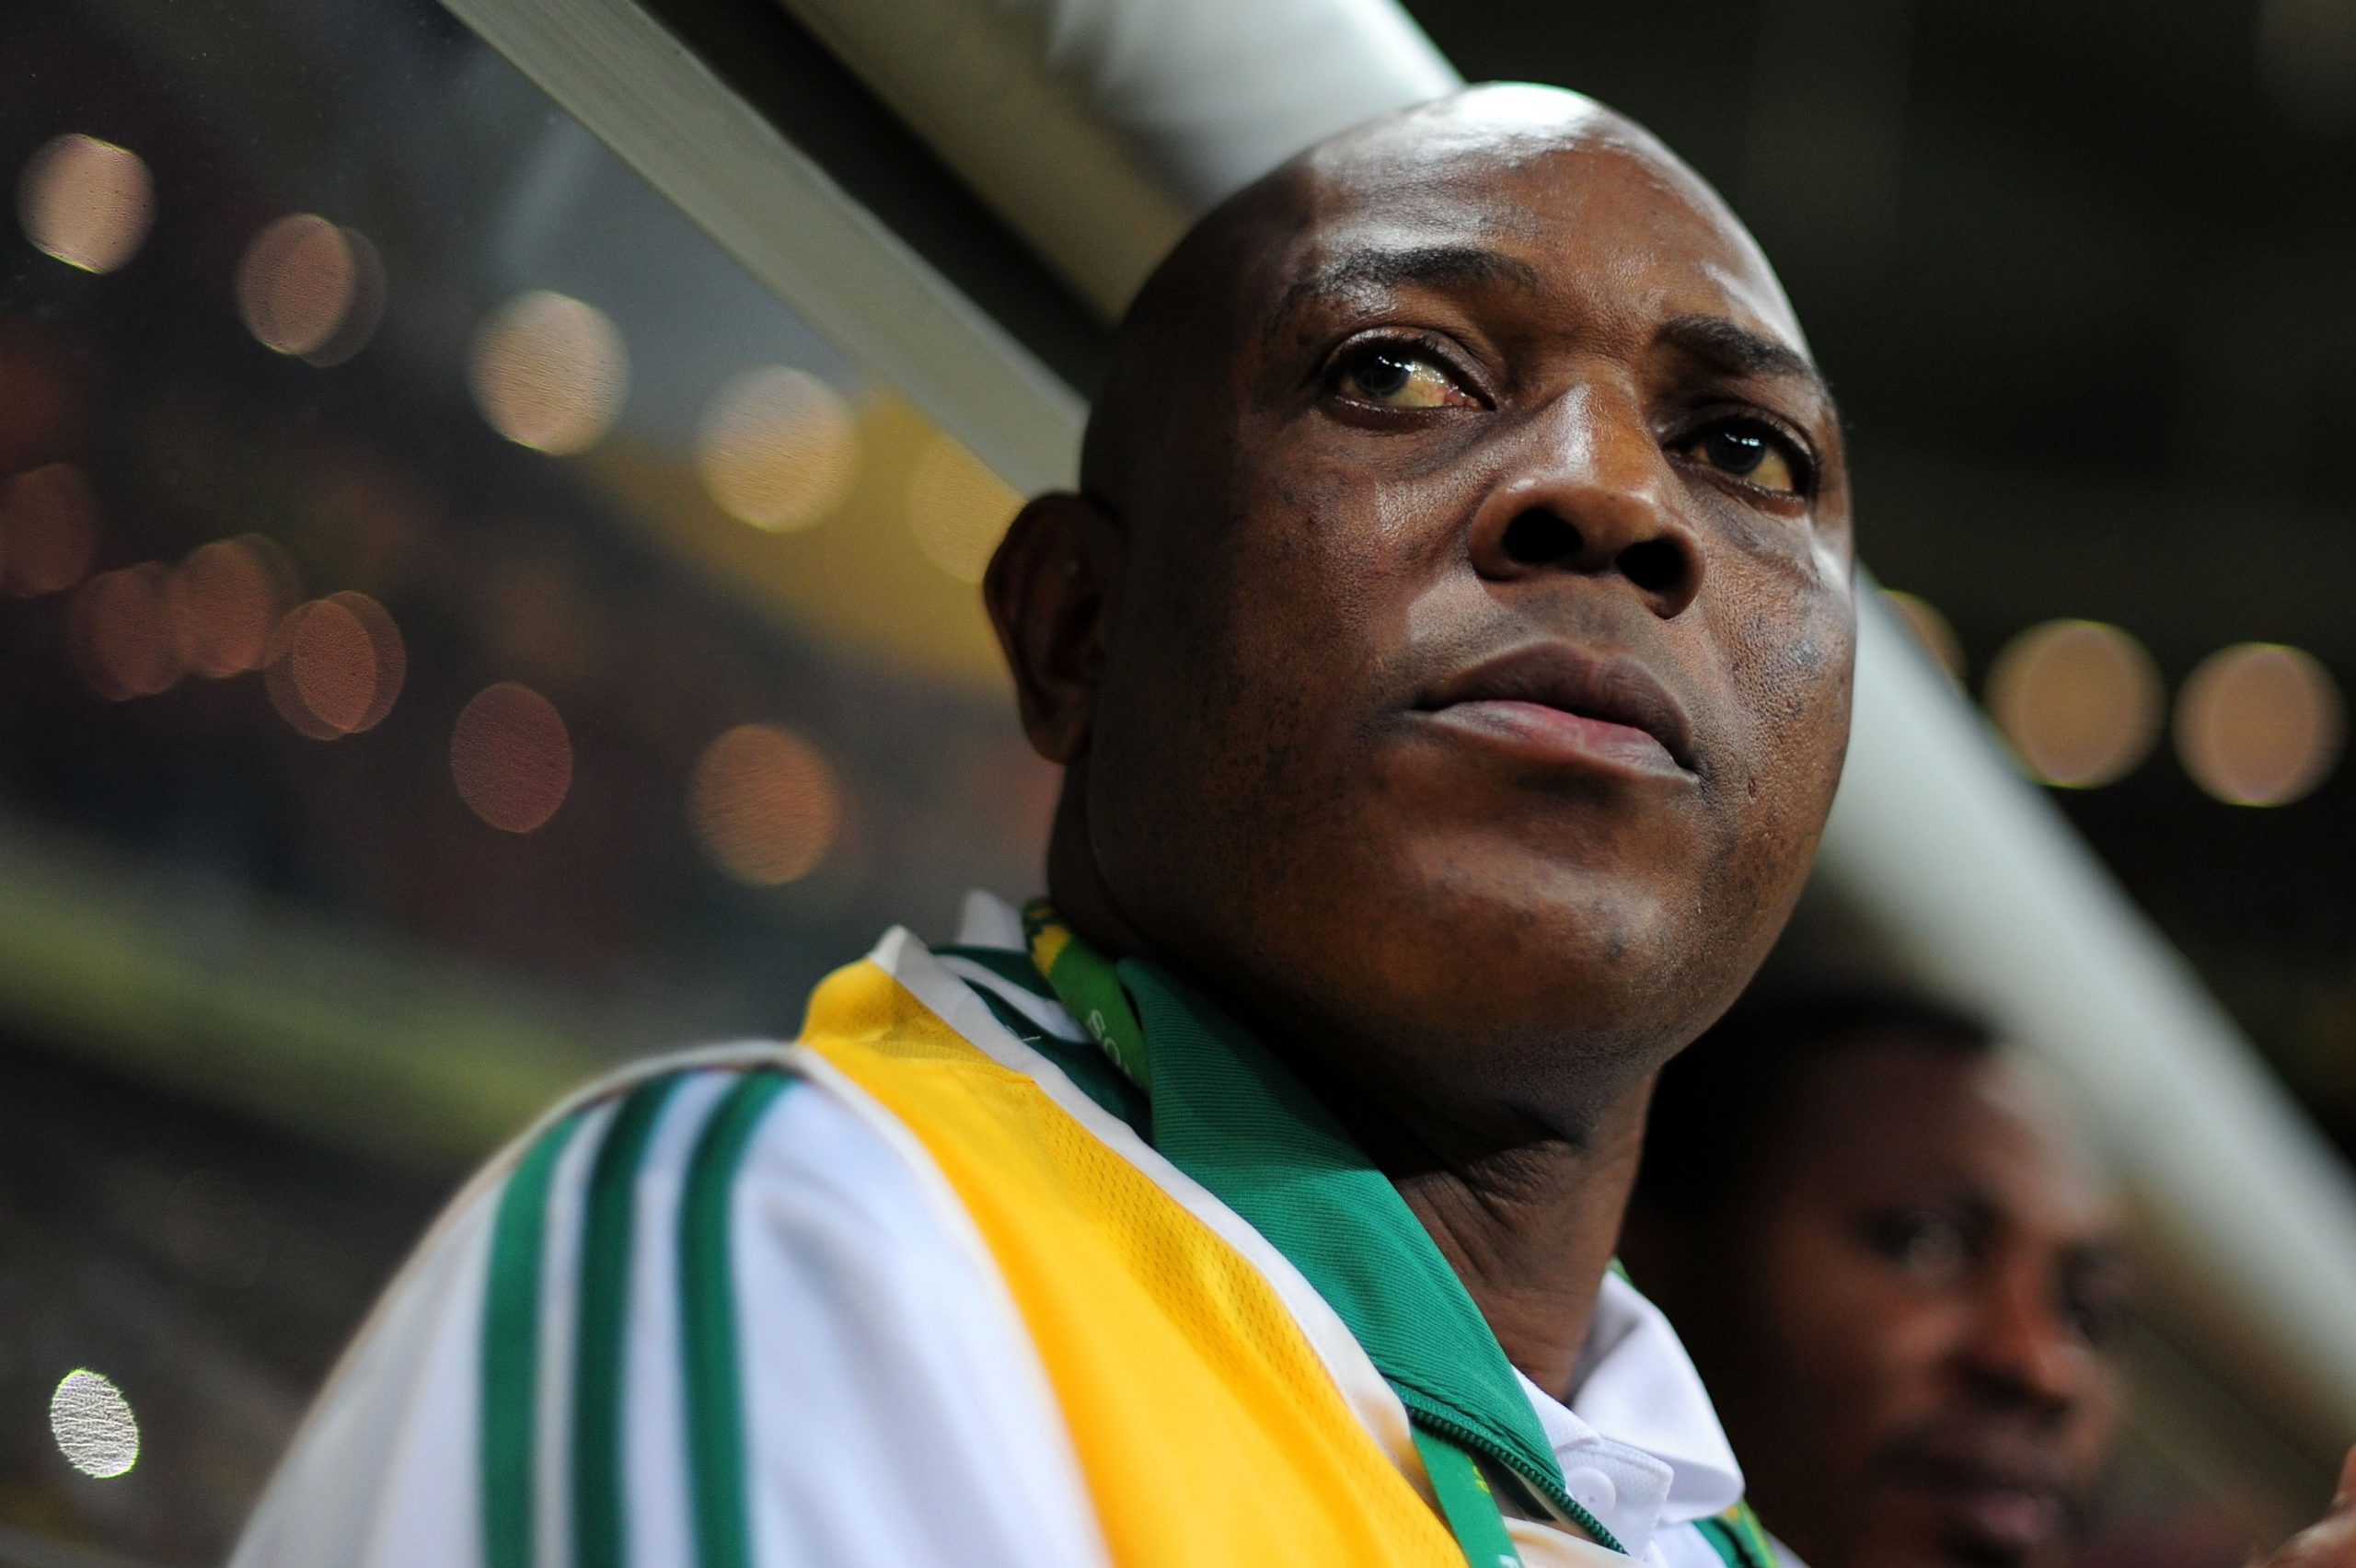 Benin City Ready For 3rd Keshi Tourney; Sodje To Deliver Lecture